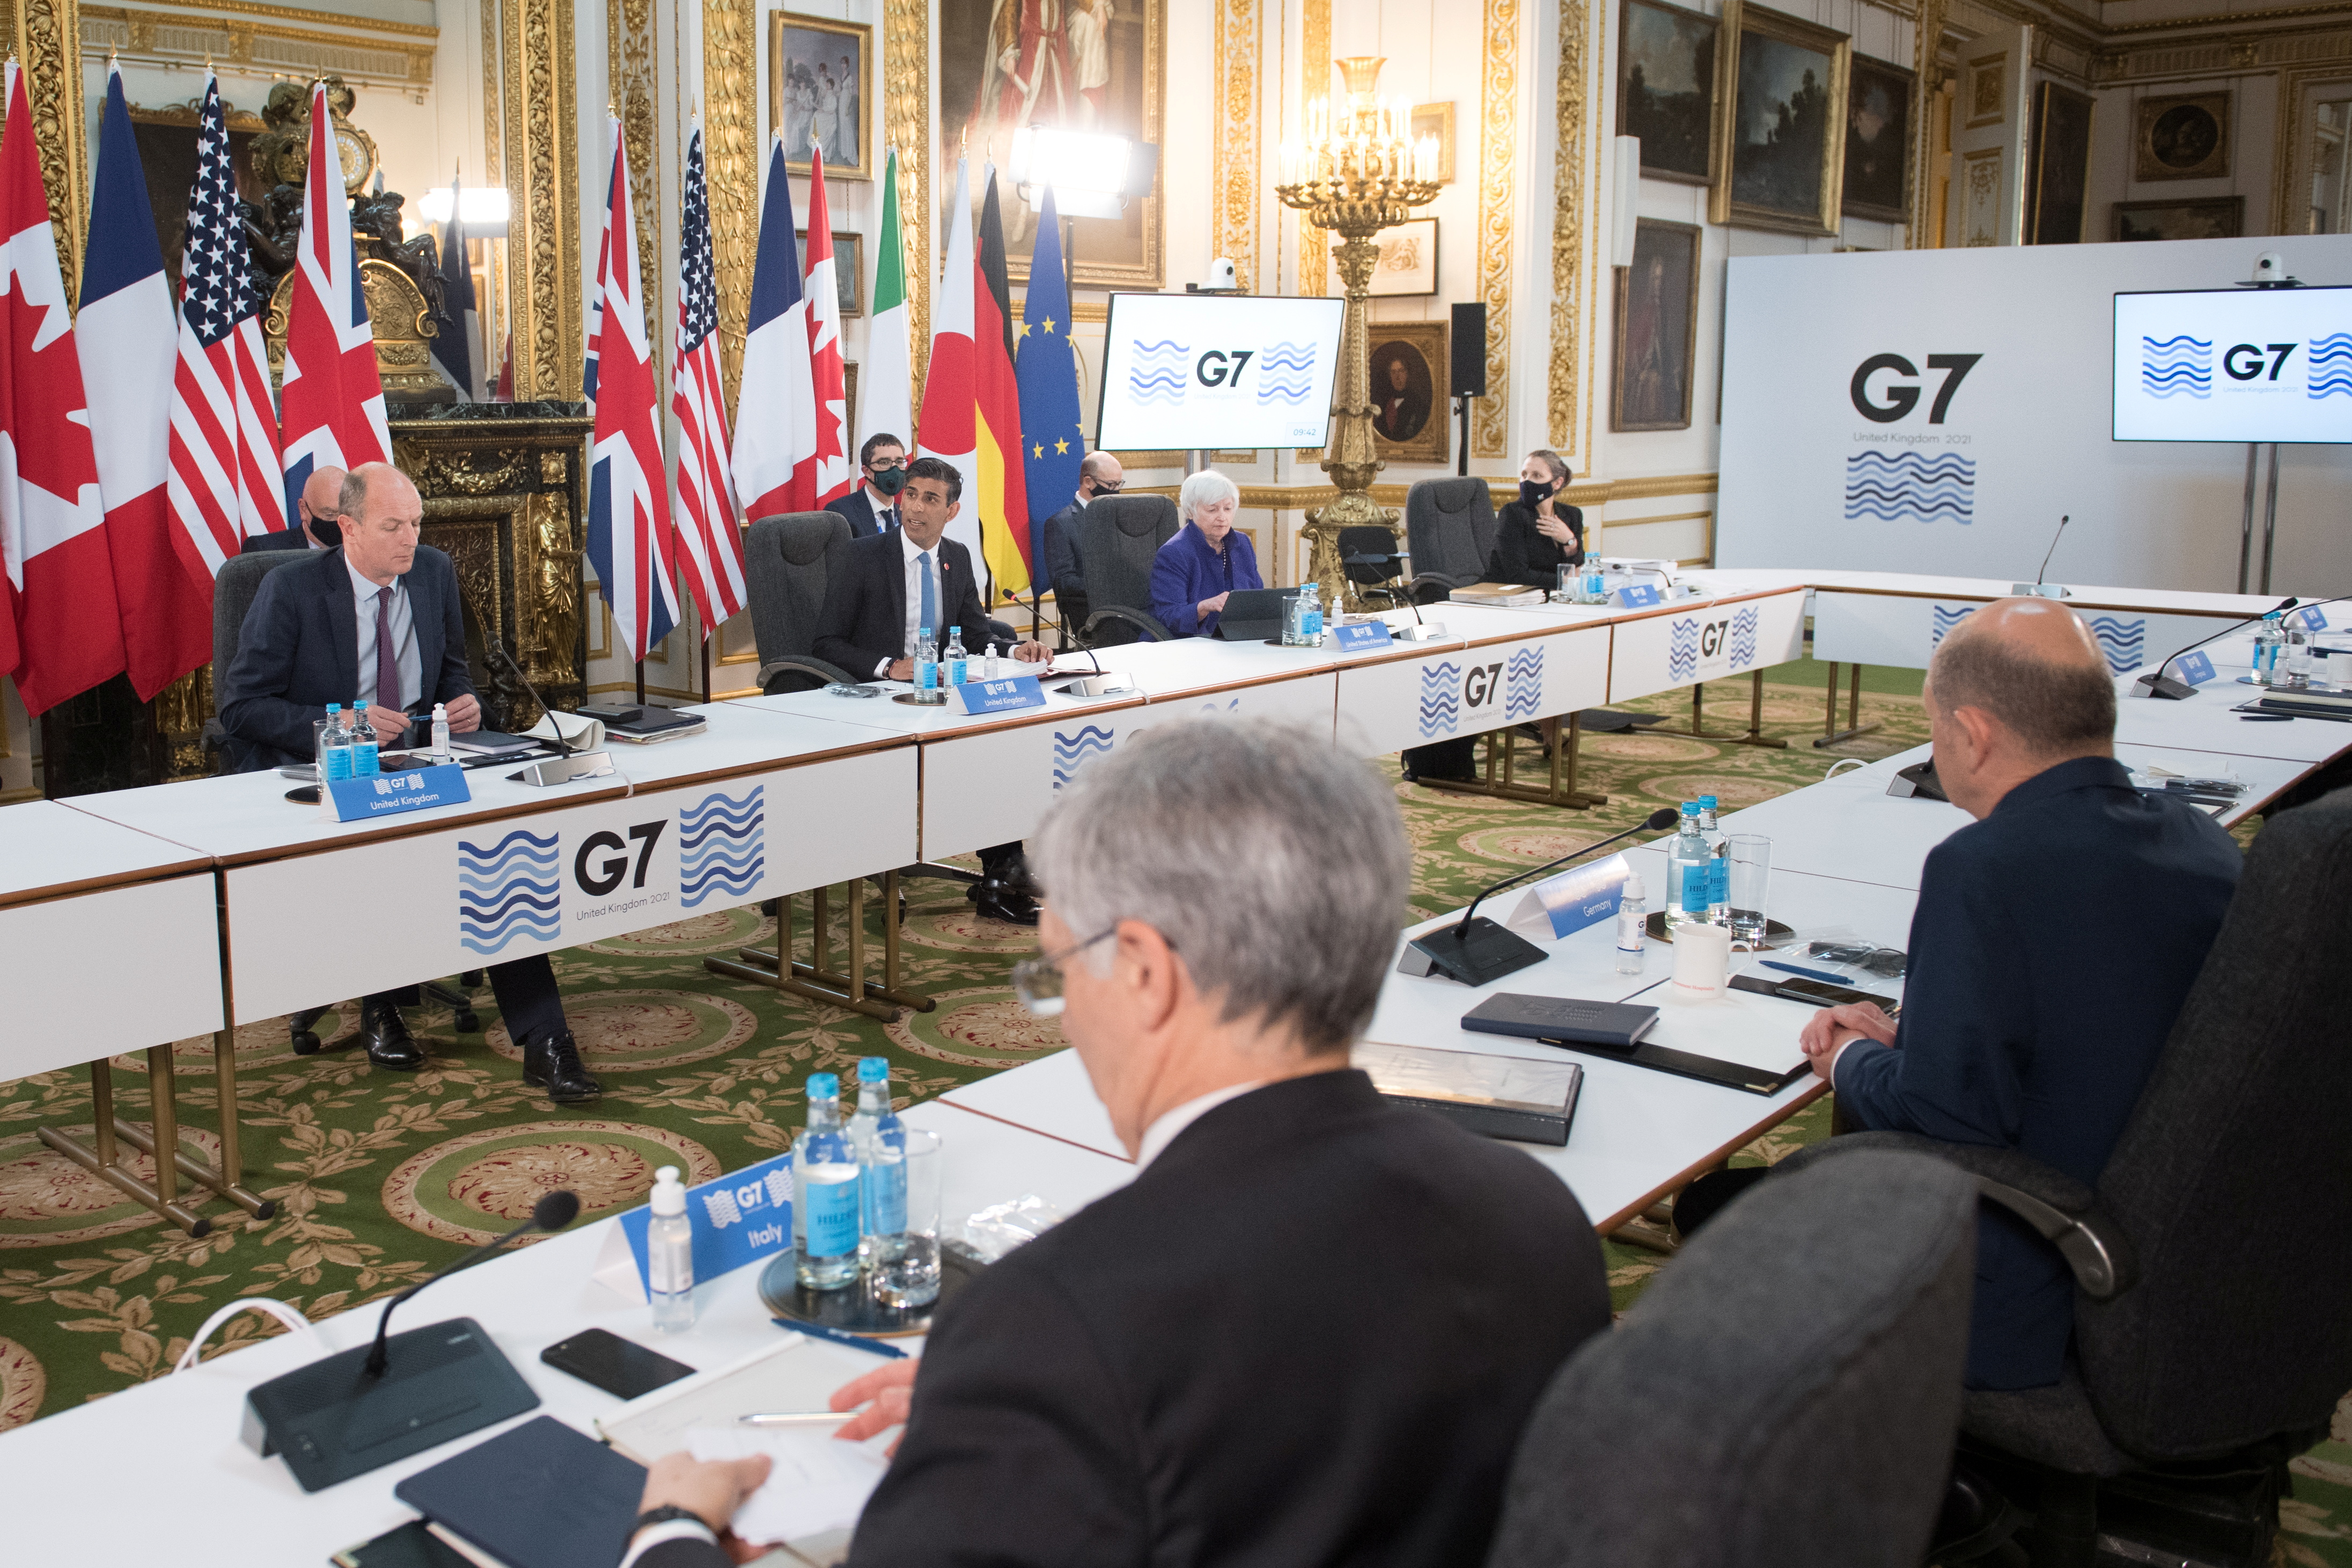 A meeting of finance ministers from across the G7 nations ahead of the G7 leaders' summit, at Lancaster House in London, Britain June 4, 2021. Stefan Rousseau/PA Wire/Pool via REUTERS